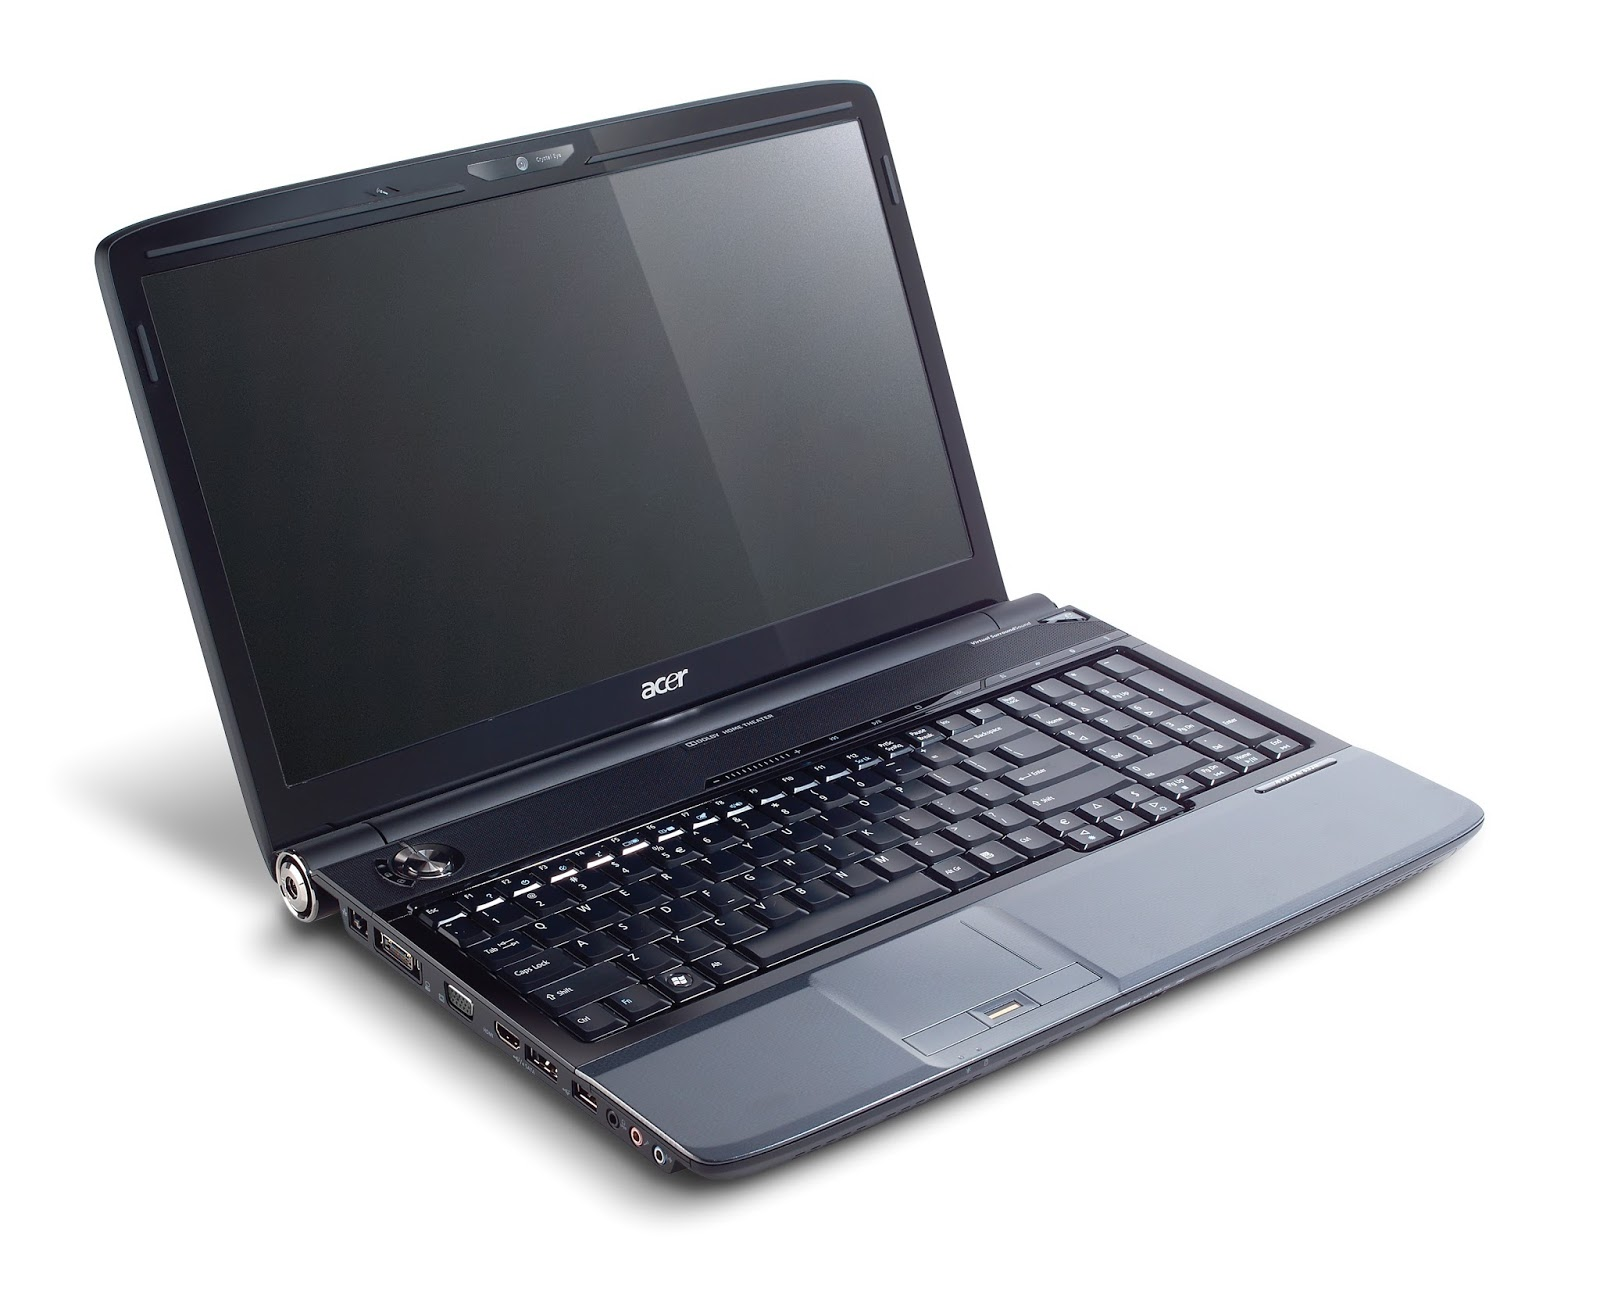 Acer Aspire 7530G Broadcom Bluetooth Windows Vista 32-BIT